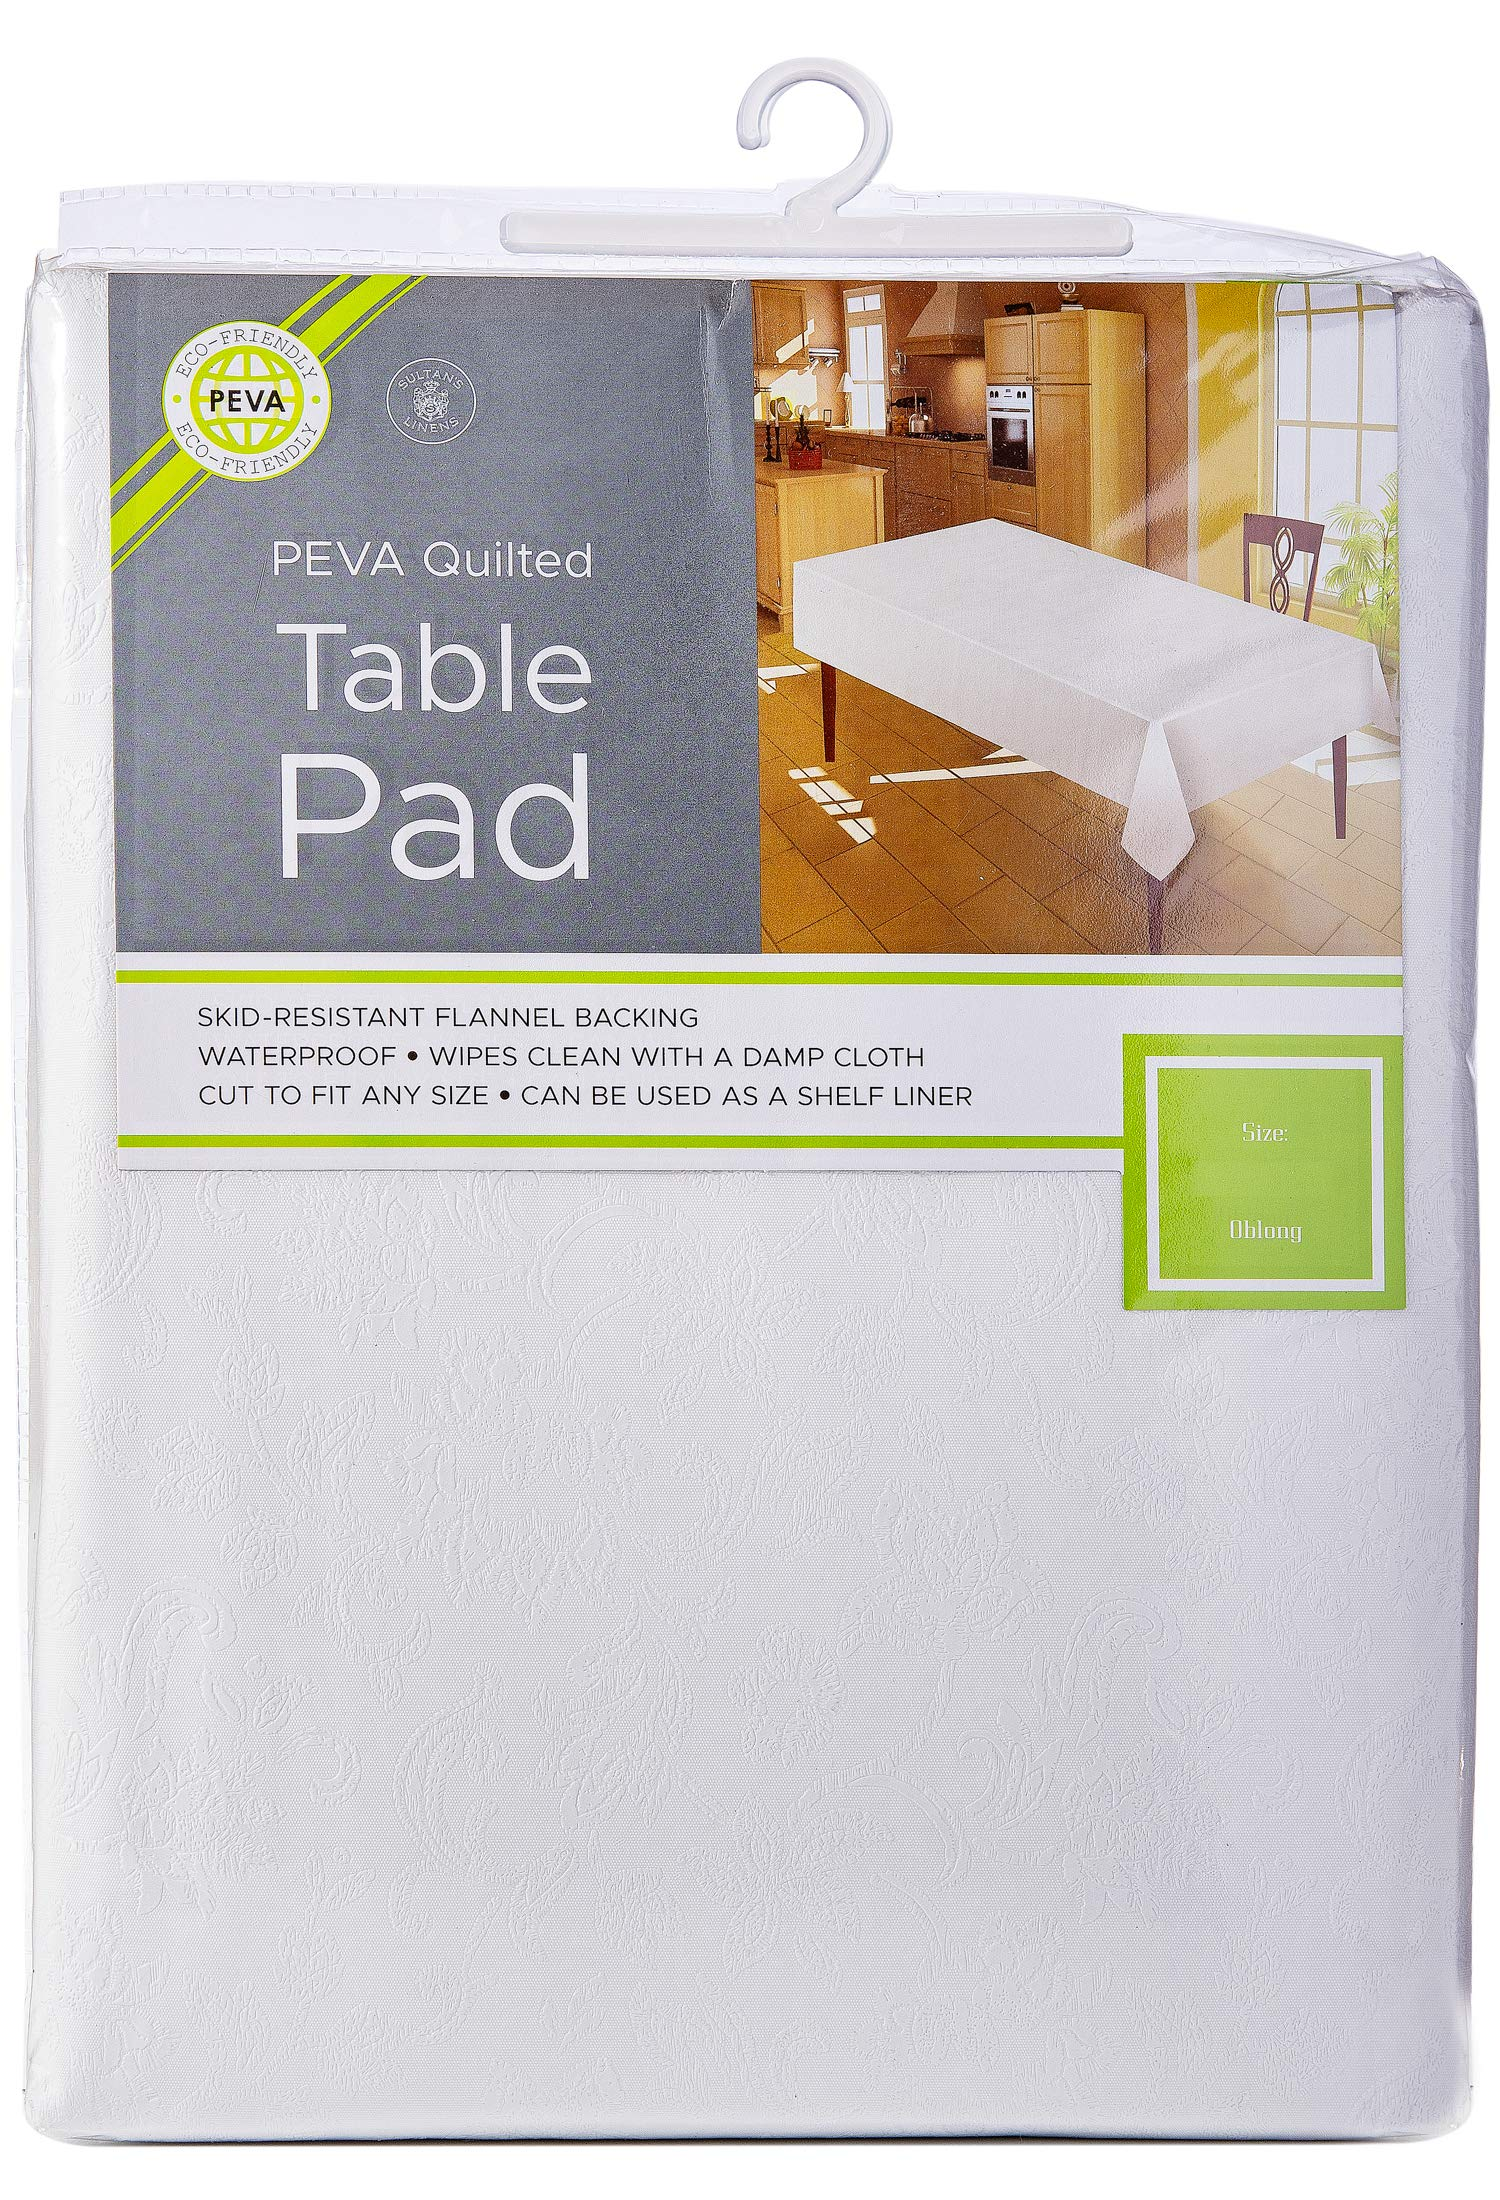 Sultan's Linens Eco-Friendly Peva Table Pad Waterproof Surface with Flannel Backing Floral (120-inch) by Sultan's Linens